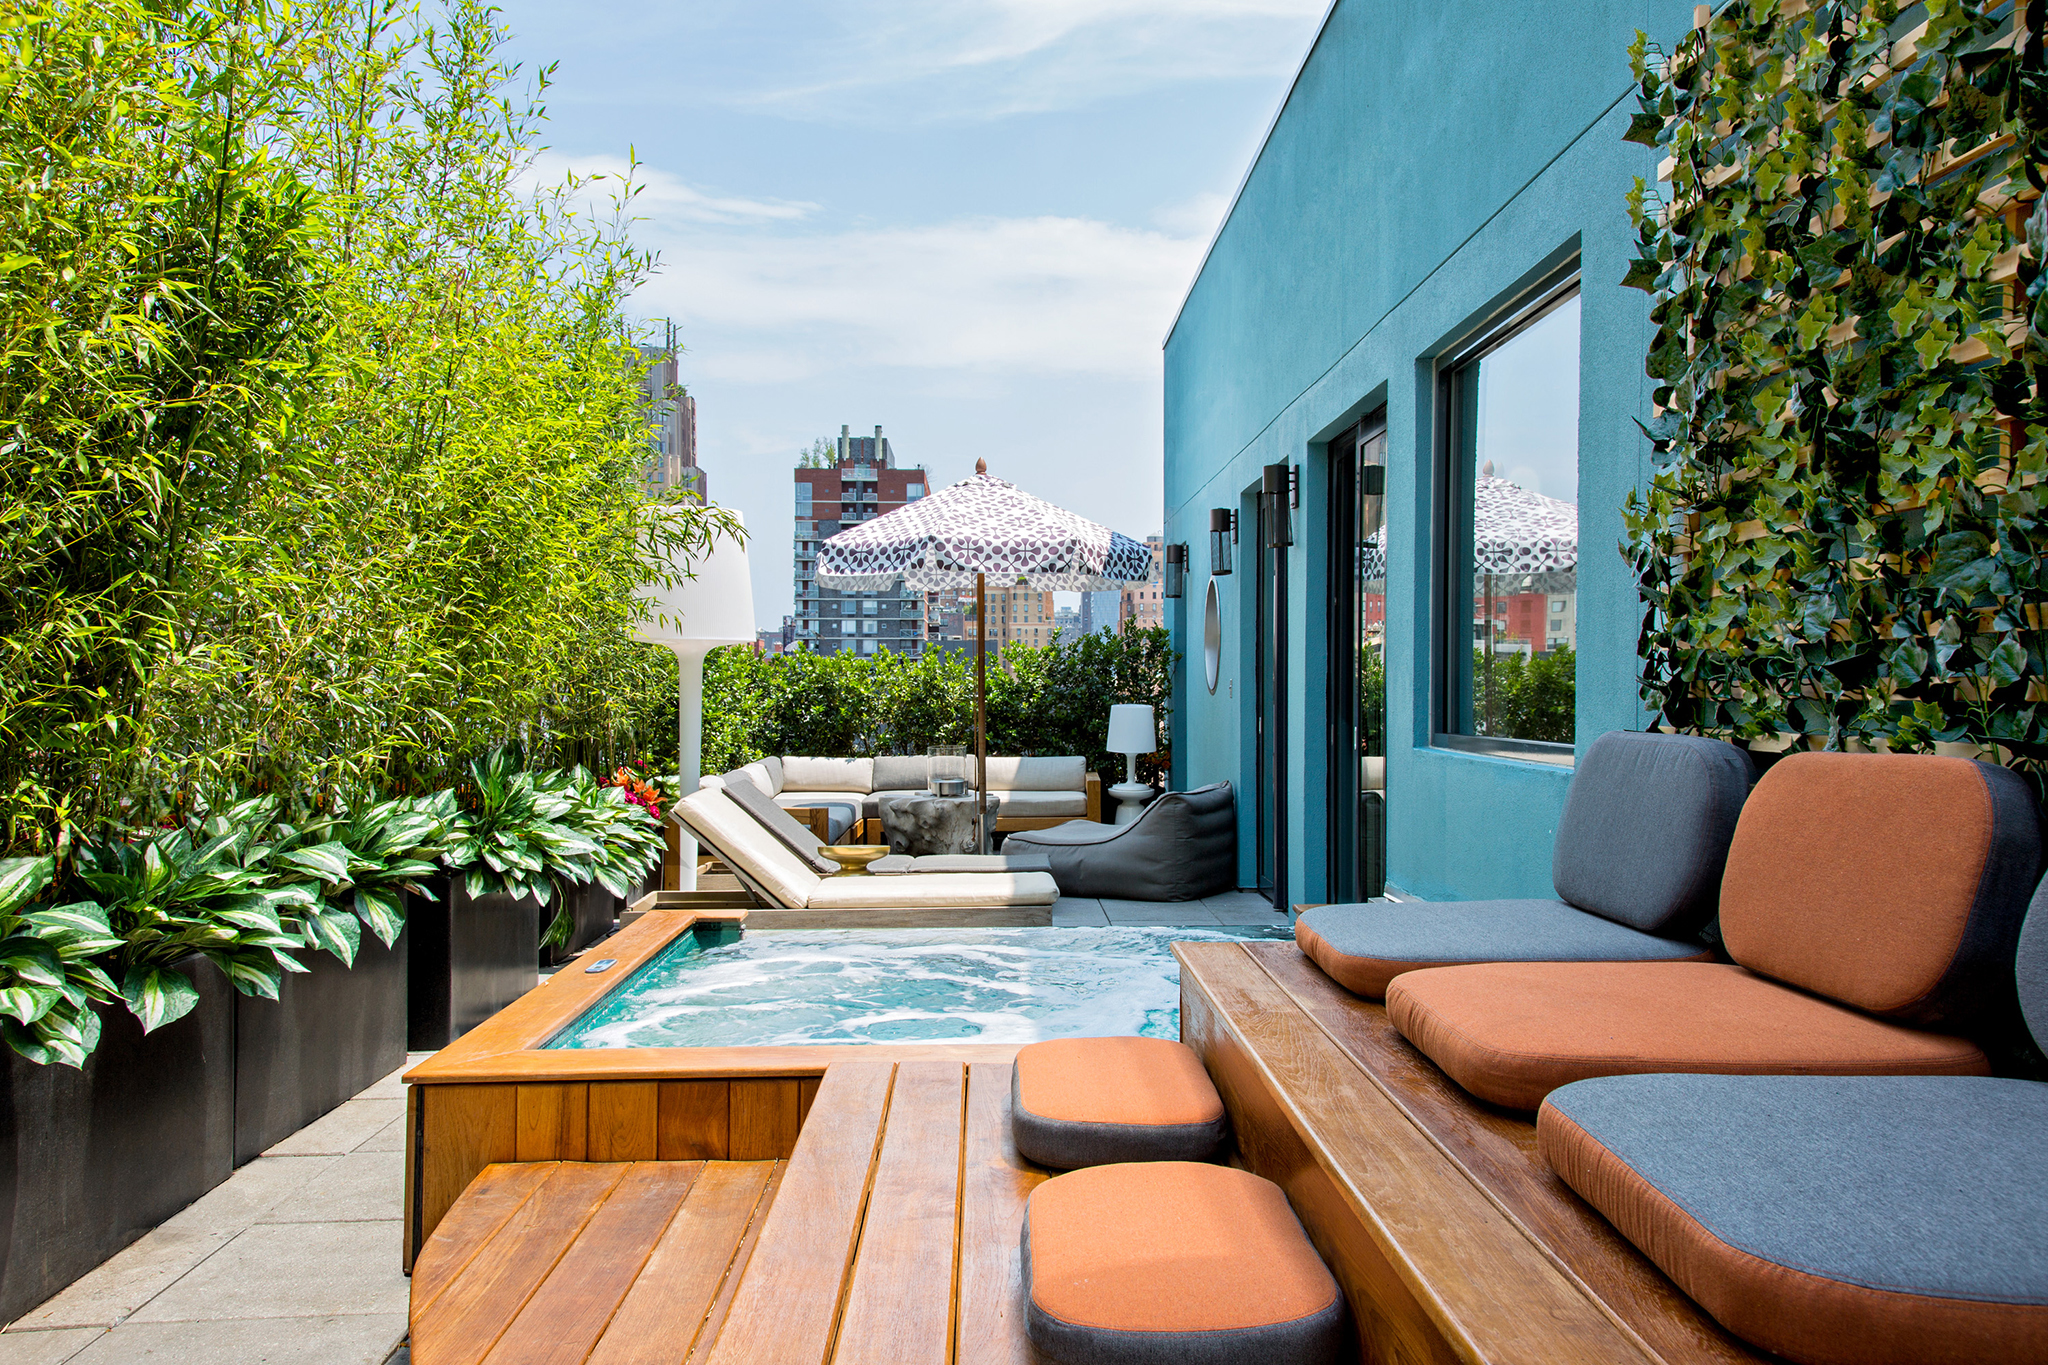 Best NYC hotels with Jacuzzis in rooms including rooftop spas : image from www.timeout.com size 2048 x 1365 jpeg 3549kB